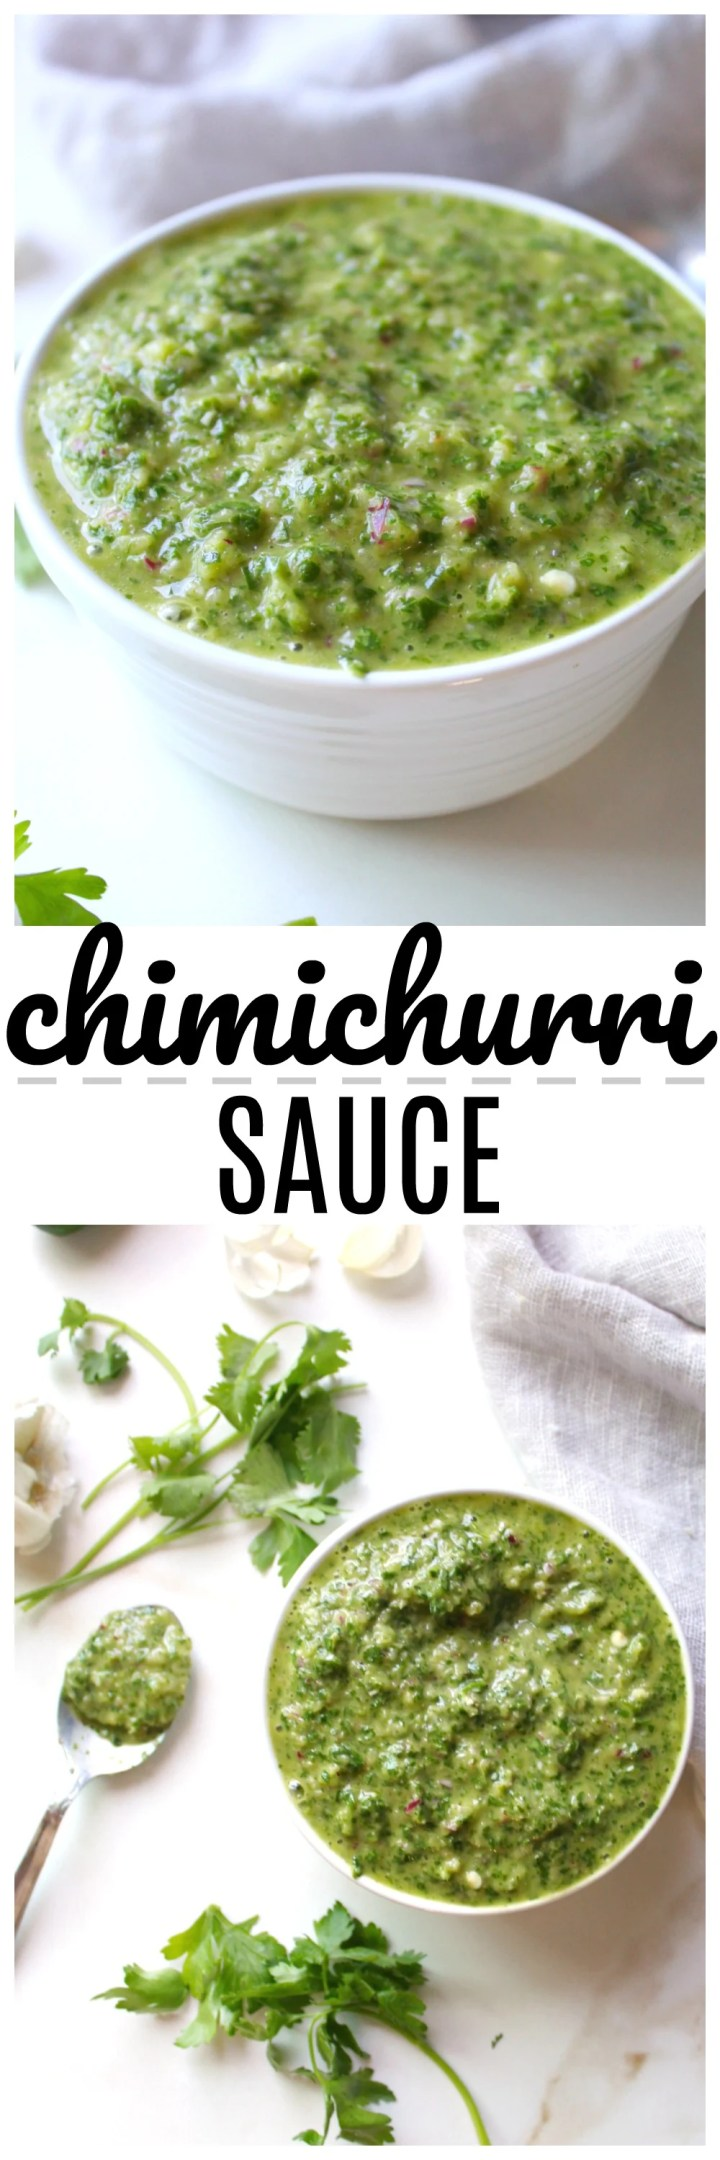 Increase the flavor of any meal with this super simple Chimichurri Sauce - made with fresh cilantro, parsley, garlic and red onion | ThisSavoryVegan.com